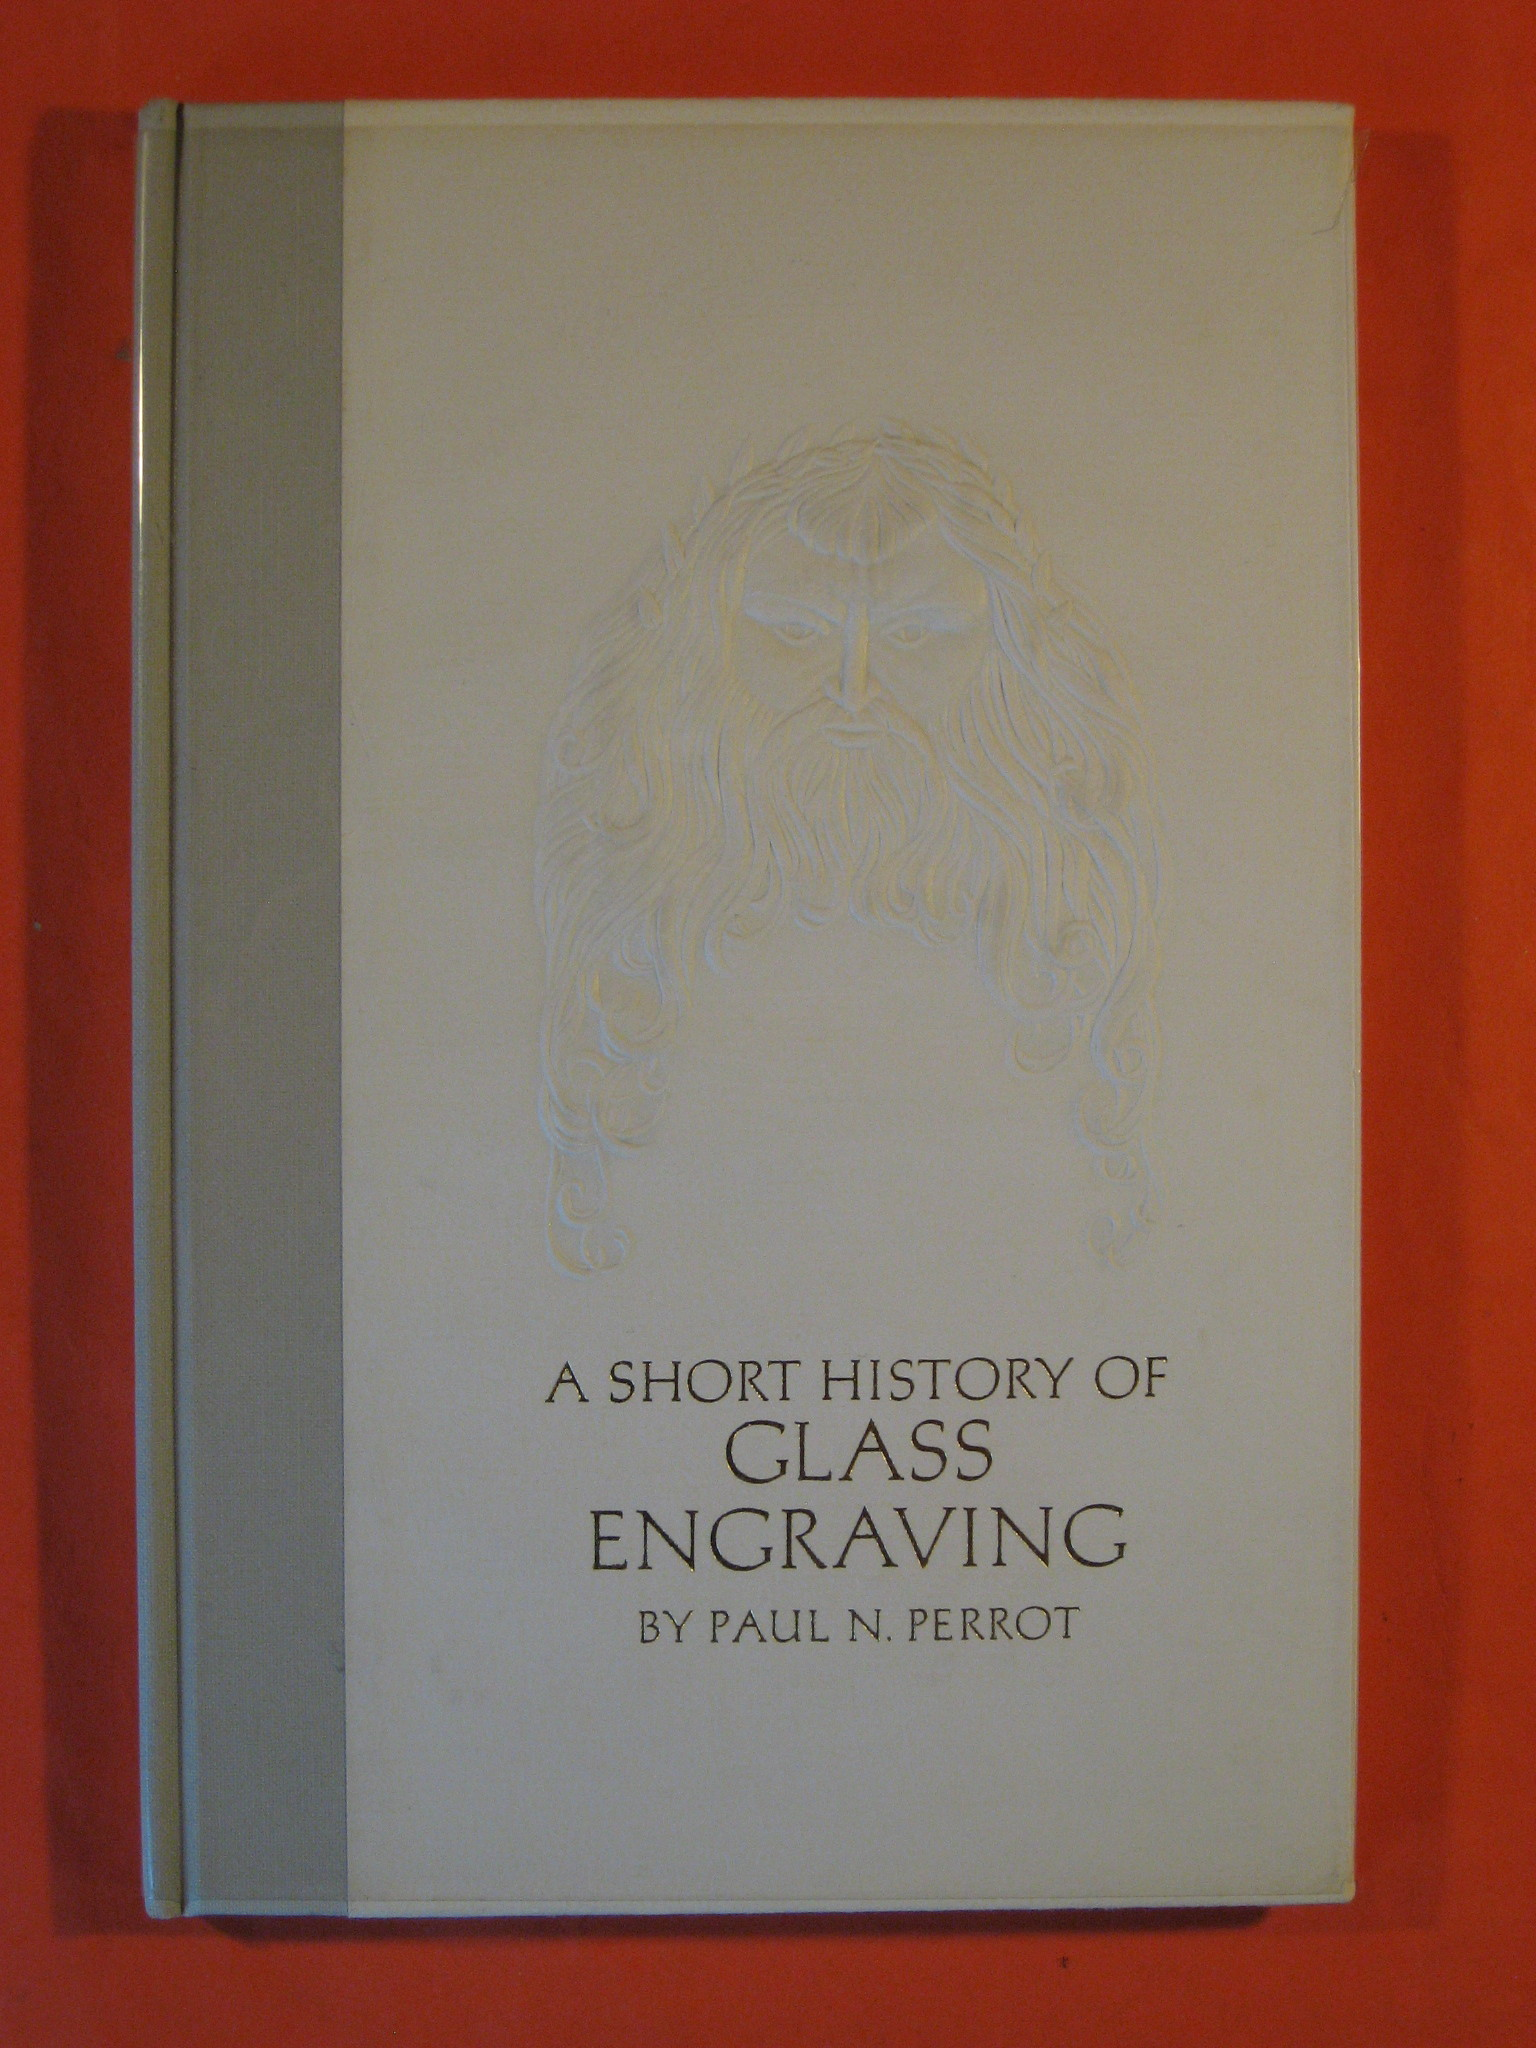 A Short History of Glass Engraving, Perrot, Paul N